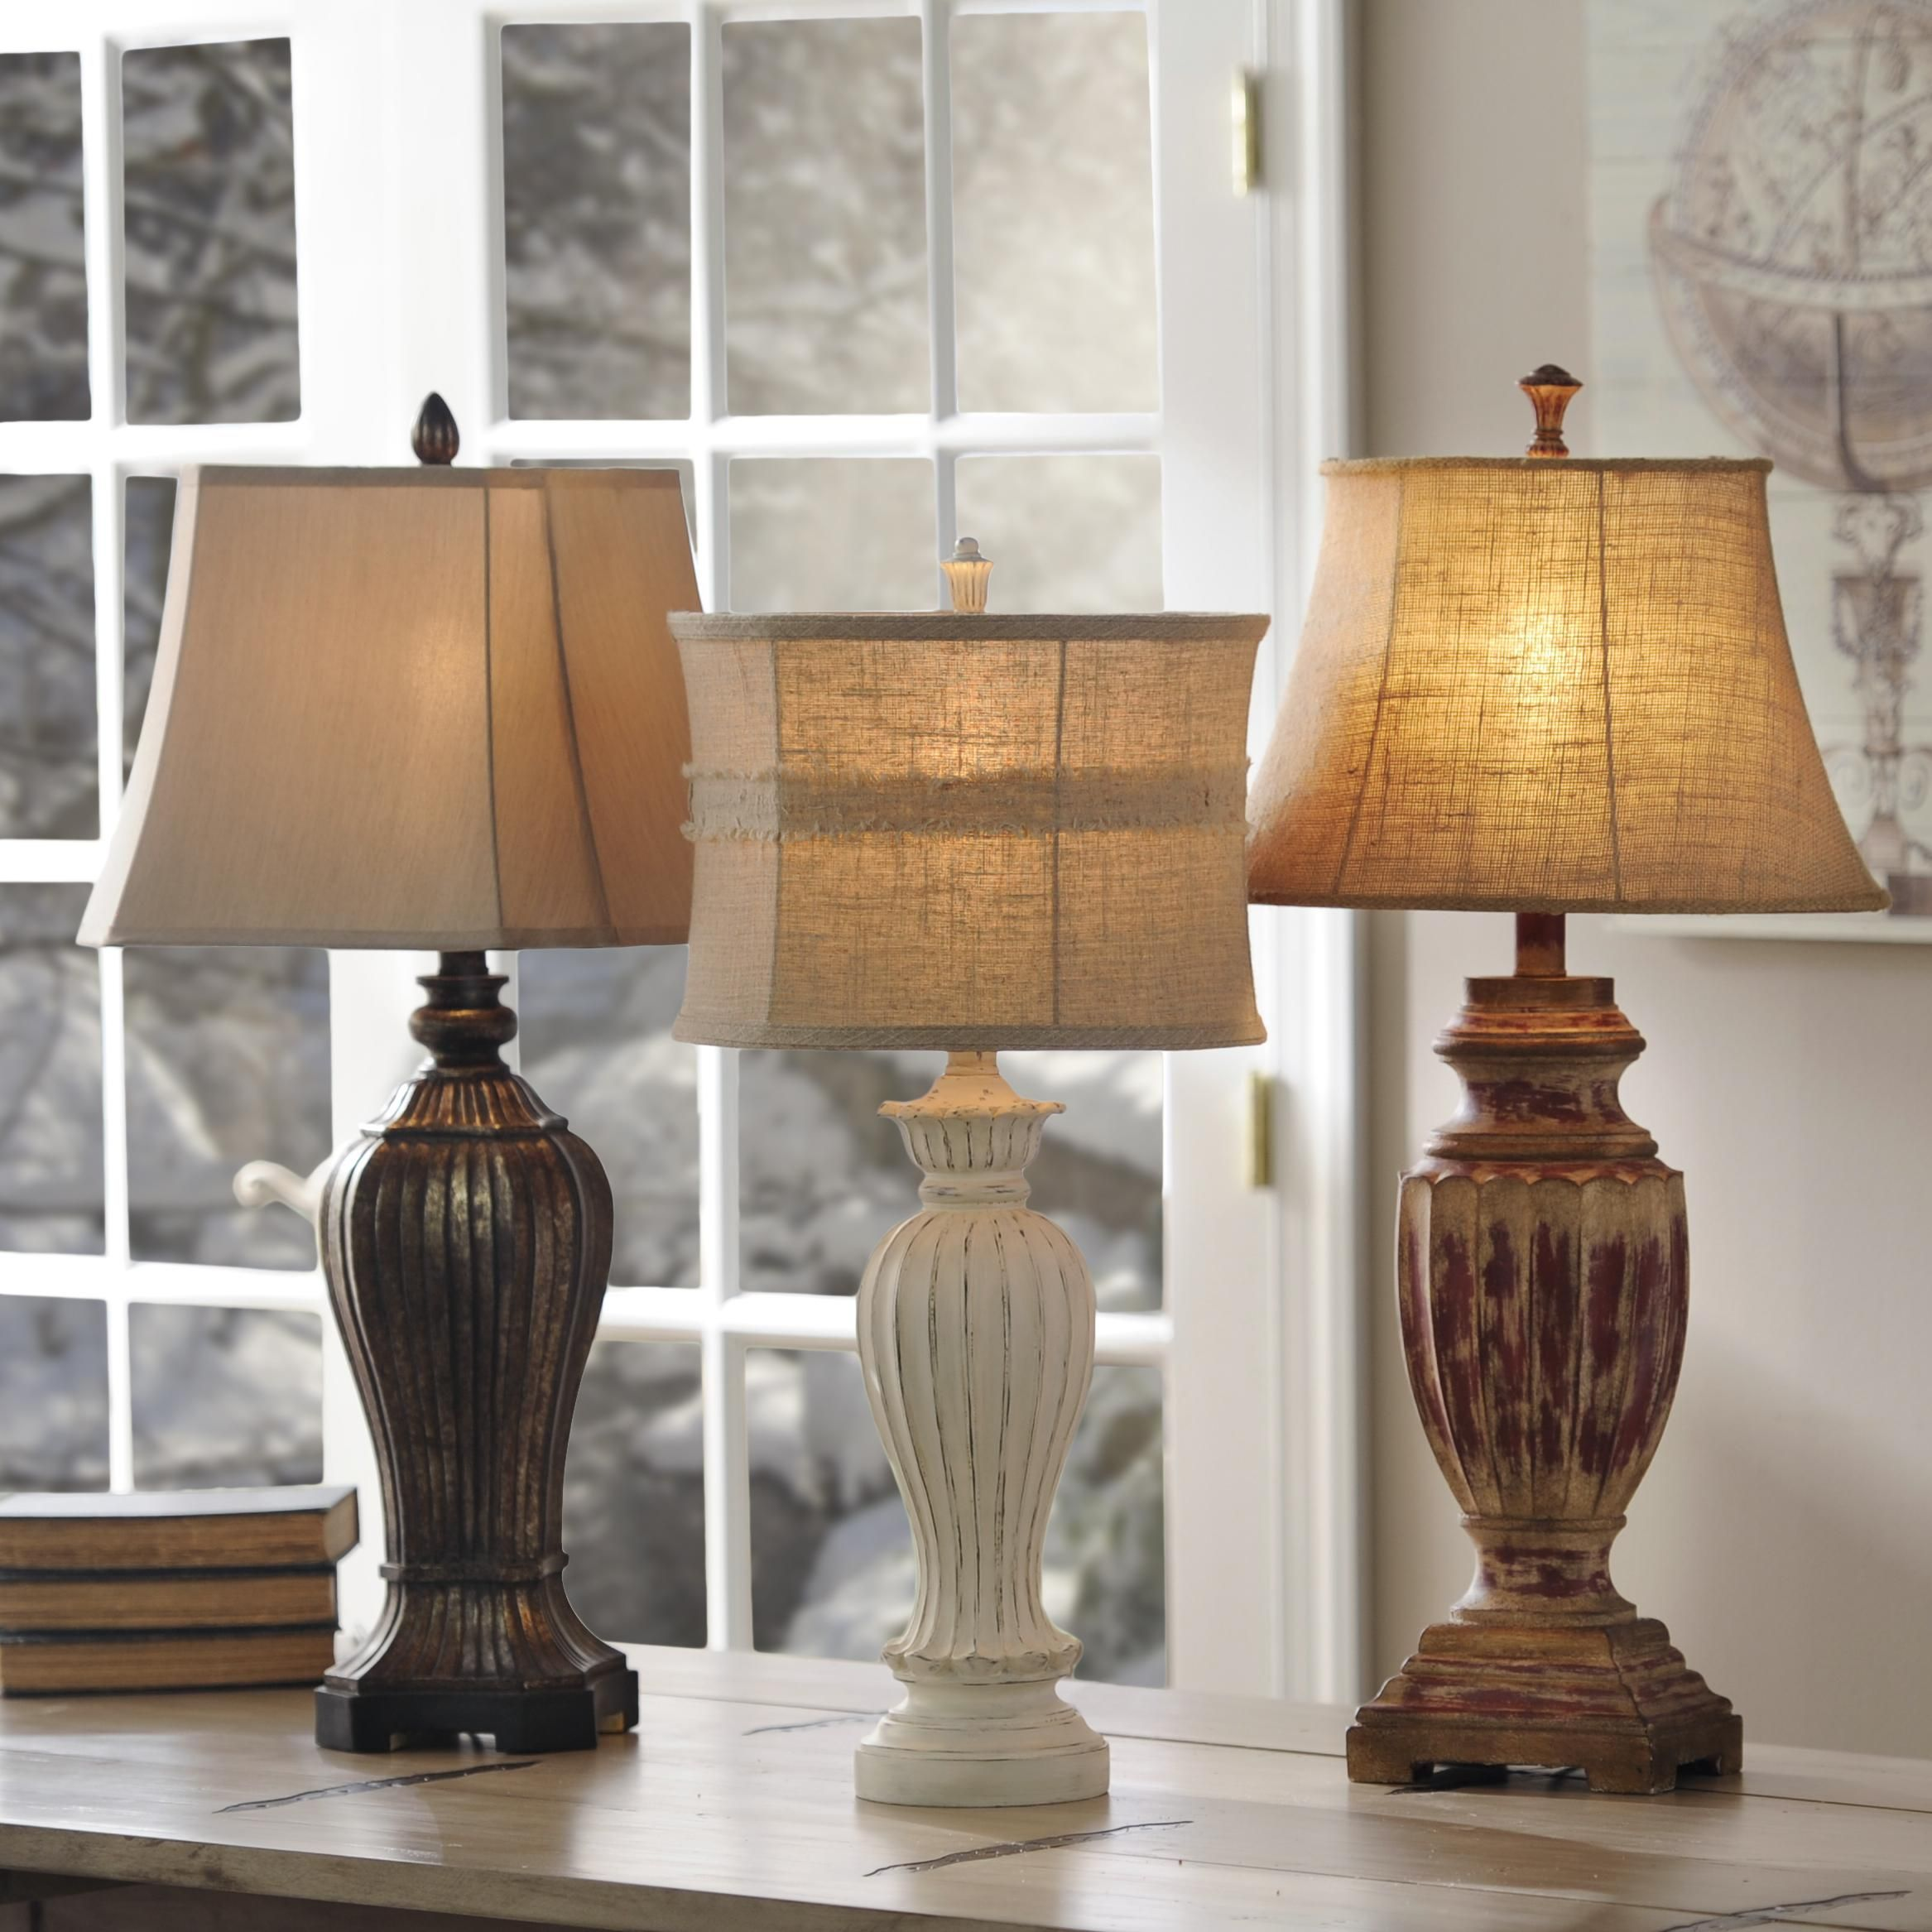 Shop Lamps For Sale Lamp Living Room Stands Lamp Decor Living room lamps for sale